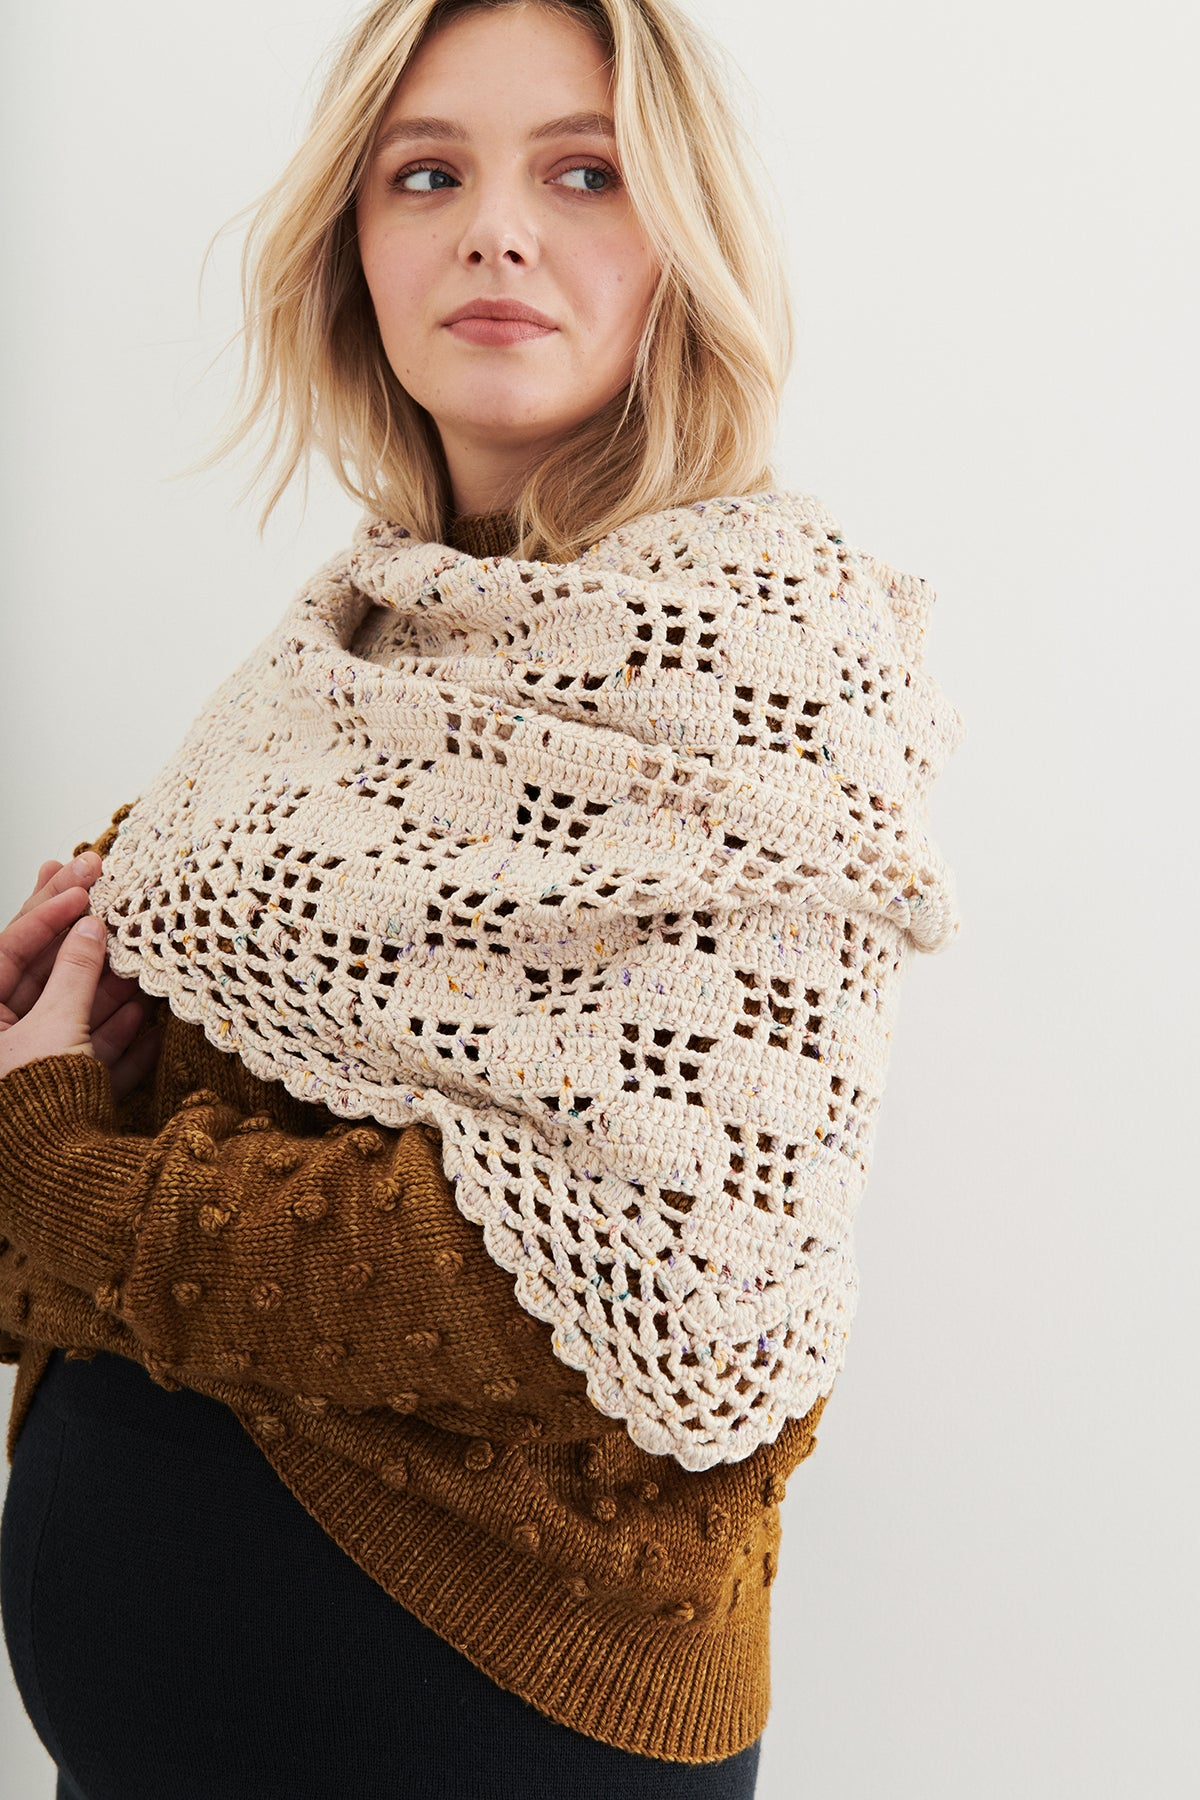 Adult Crochet Shawl